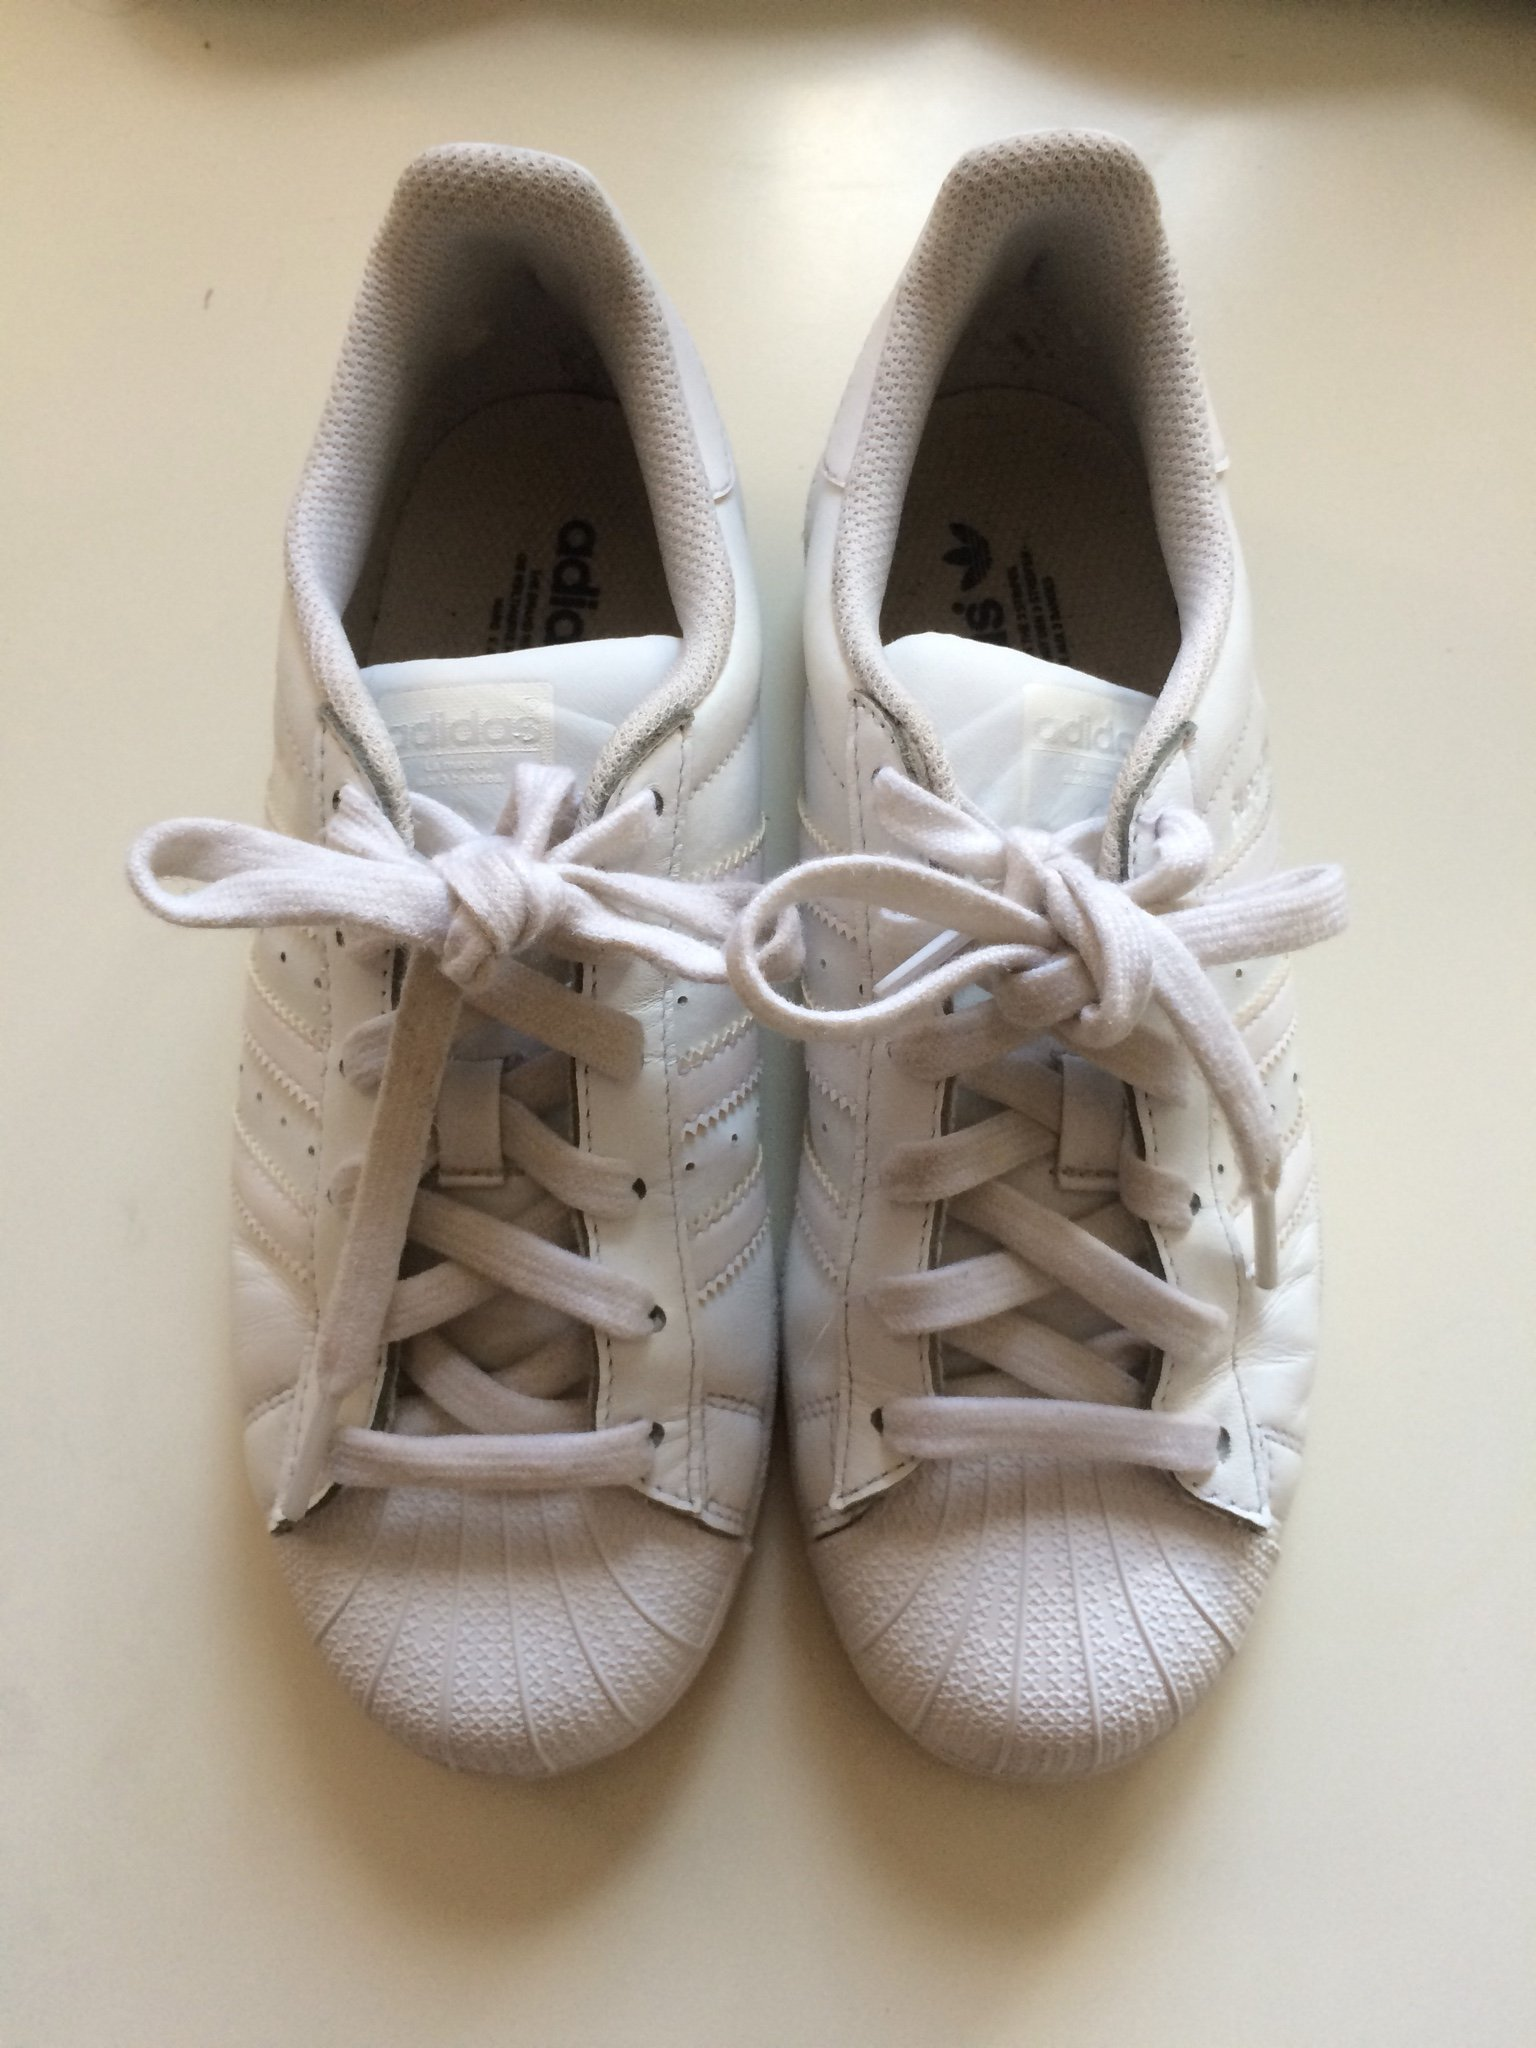 Helvita Adidas Superstar 36 23 (361032239) ᐈ Köp på Tradera